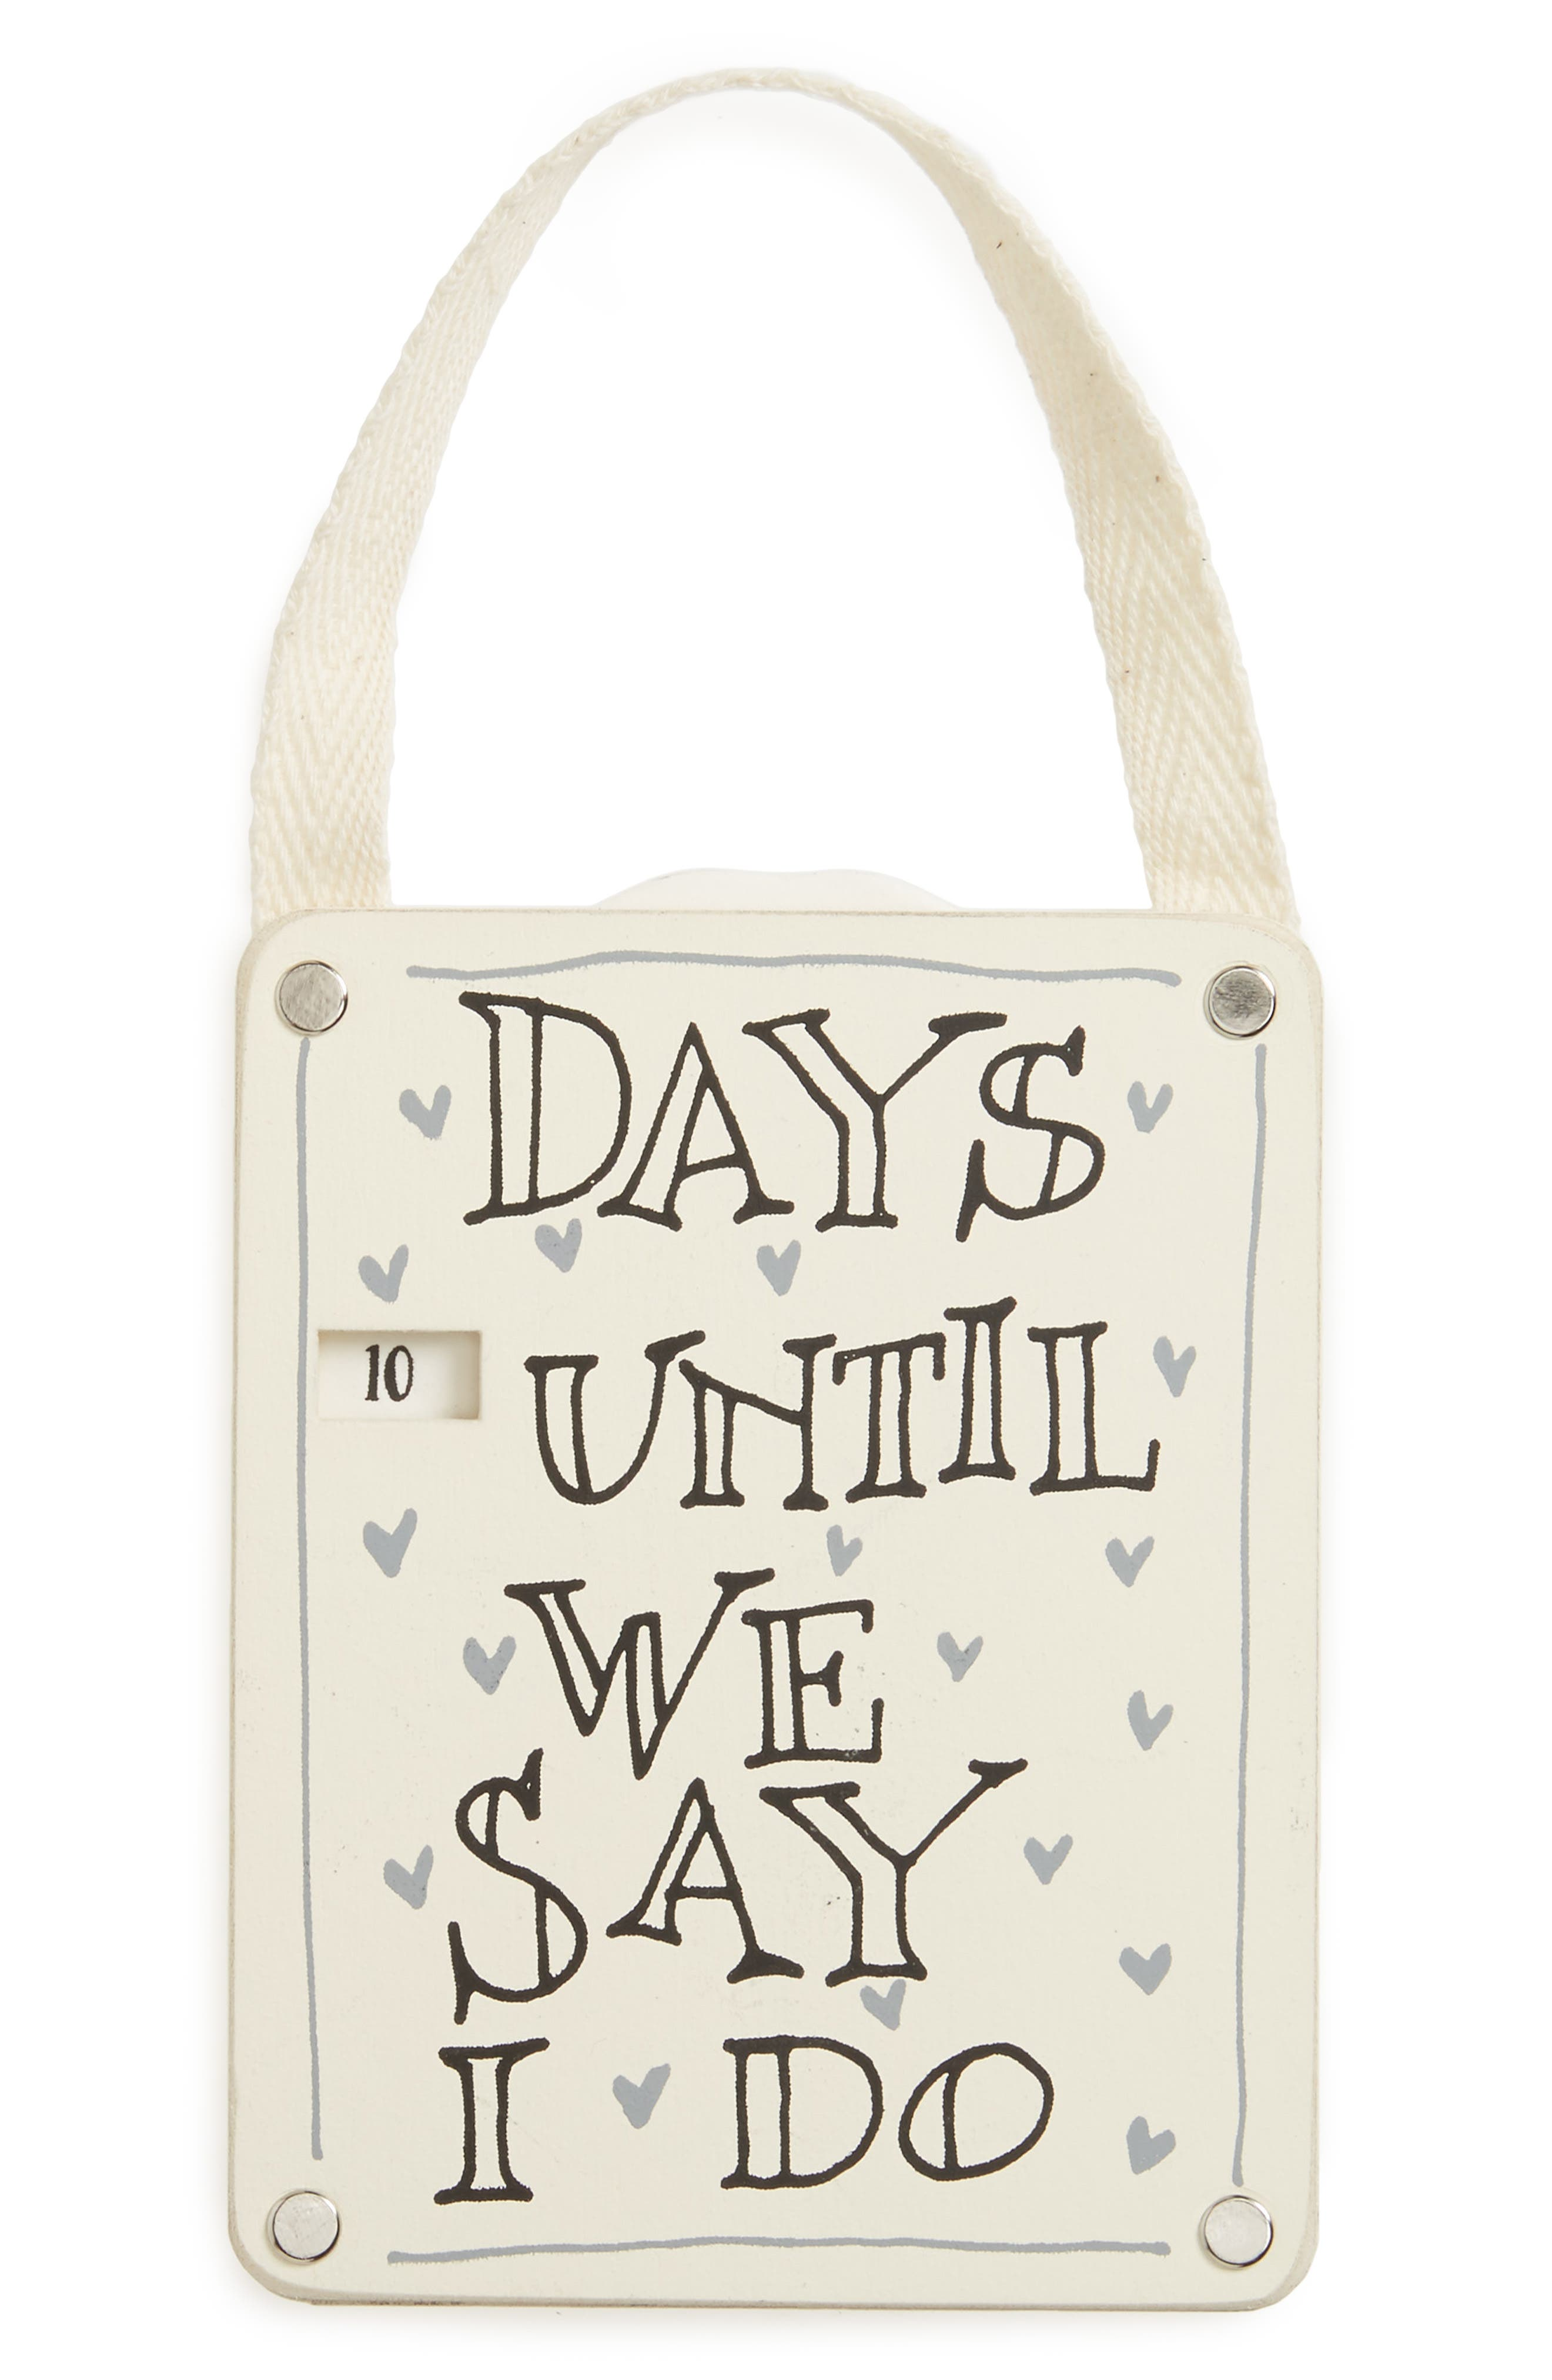 Countdown Until We Say I Do Sign,                         Main,                         color, Ivory